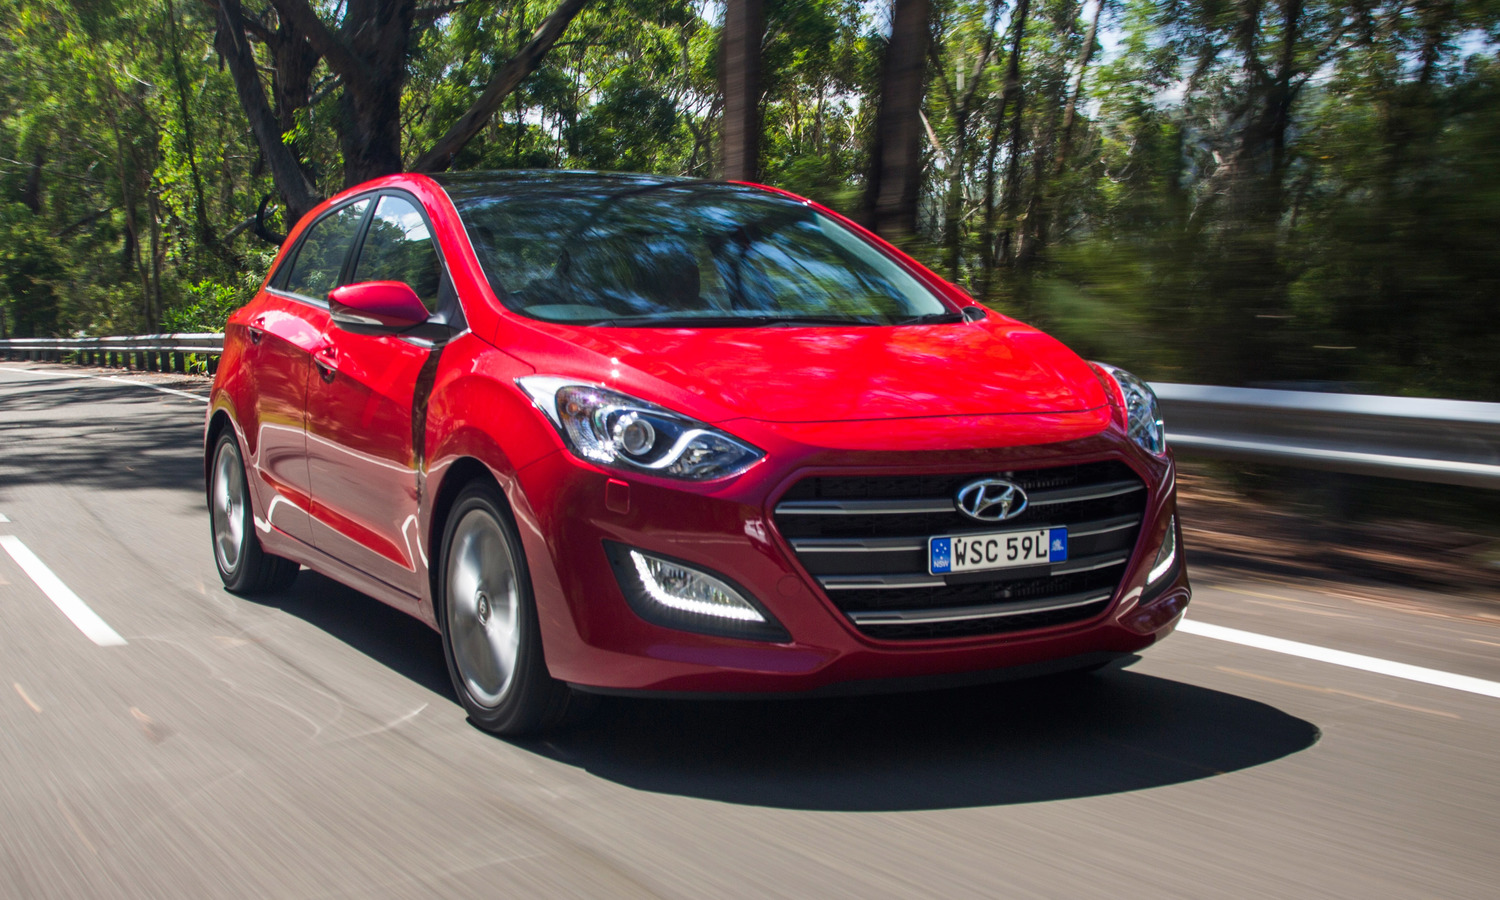 Hyundai i30 - the 'other small car in the top three.